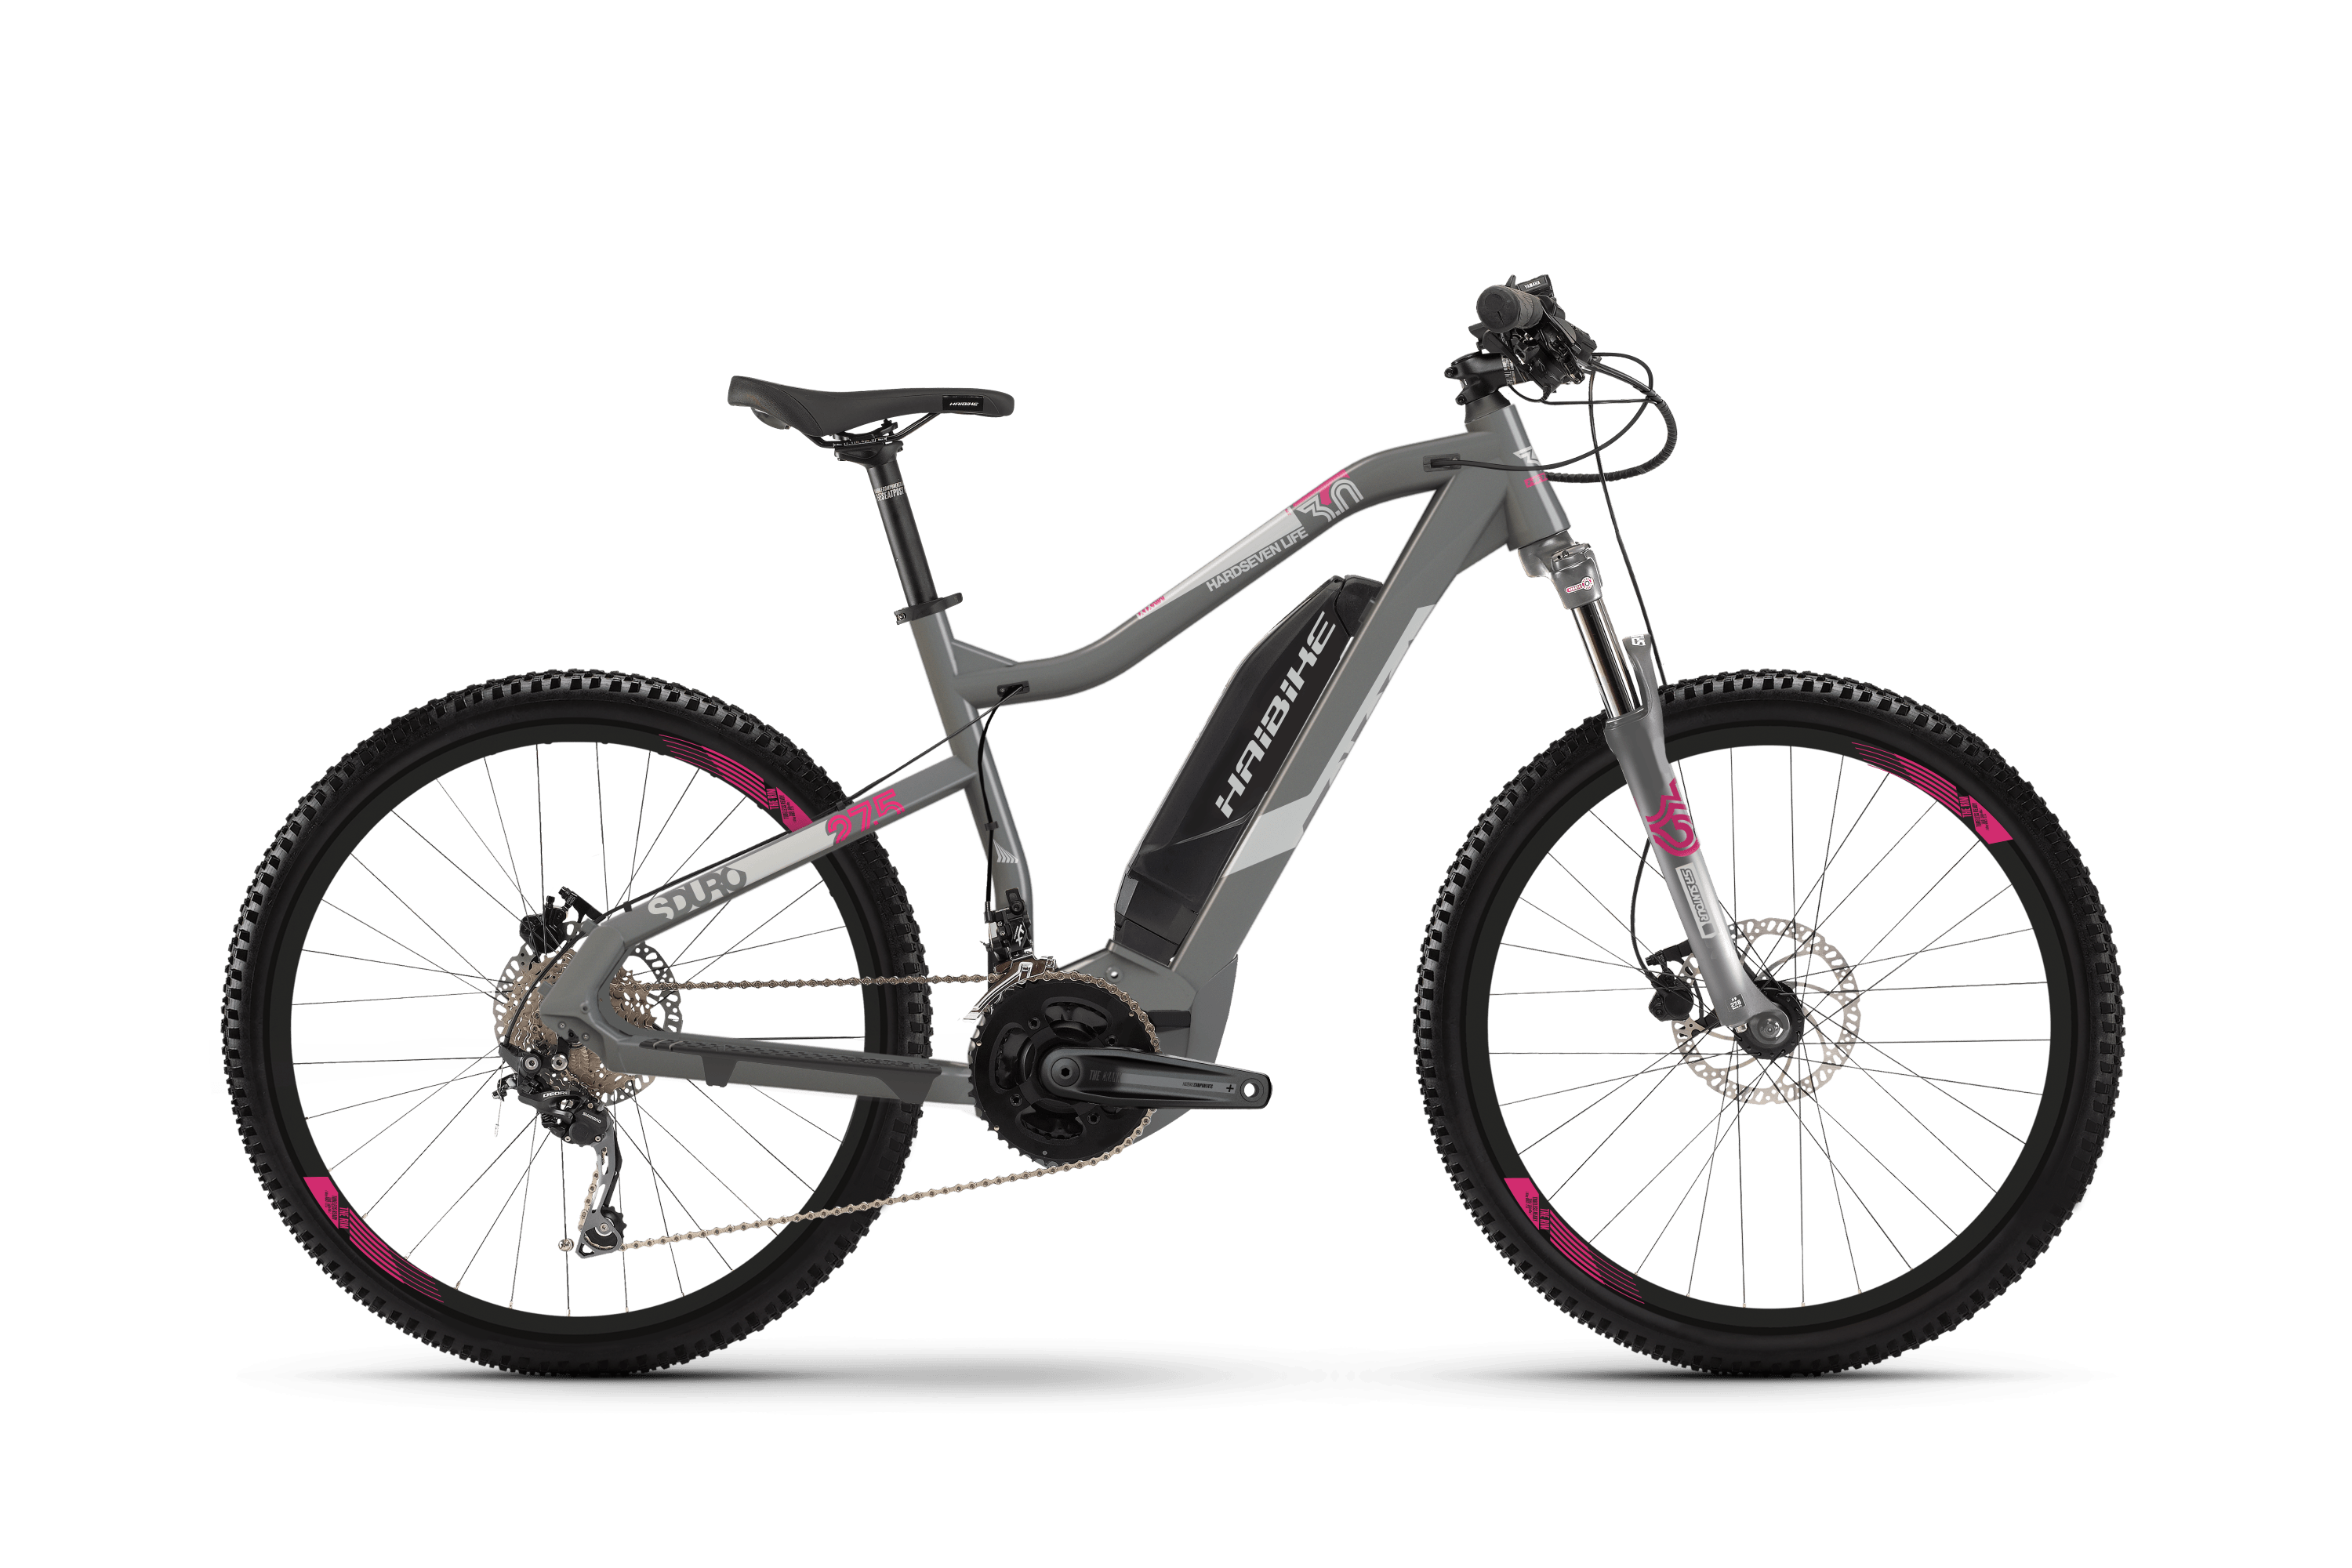 https://w8w5m3f8.stackpathcdn.com/12016-thickbox_extralarge/vtt-electrique-haibike-sduro-hardseven-life-30.jpg